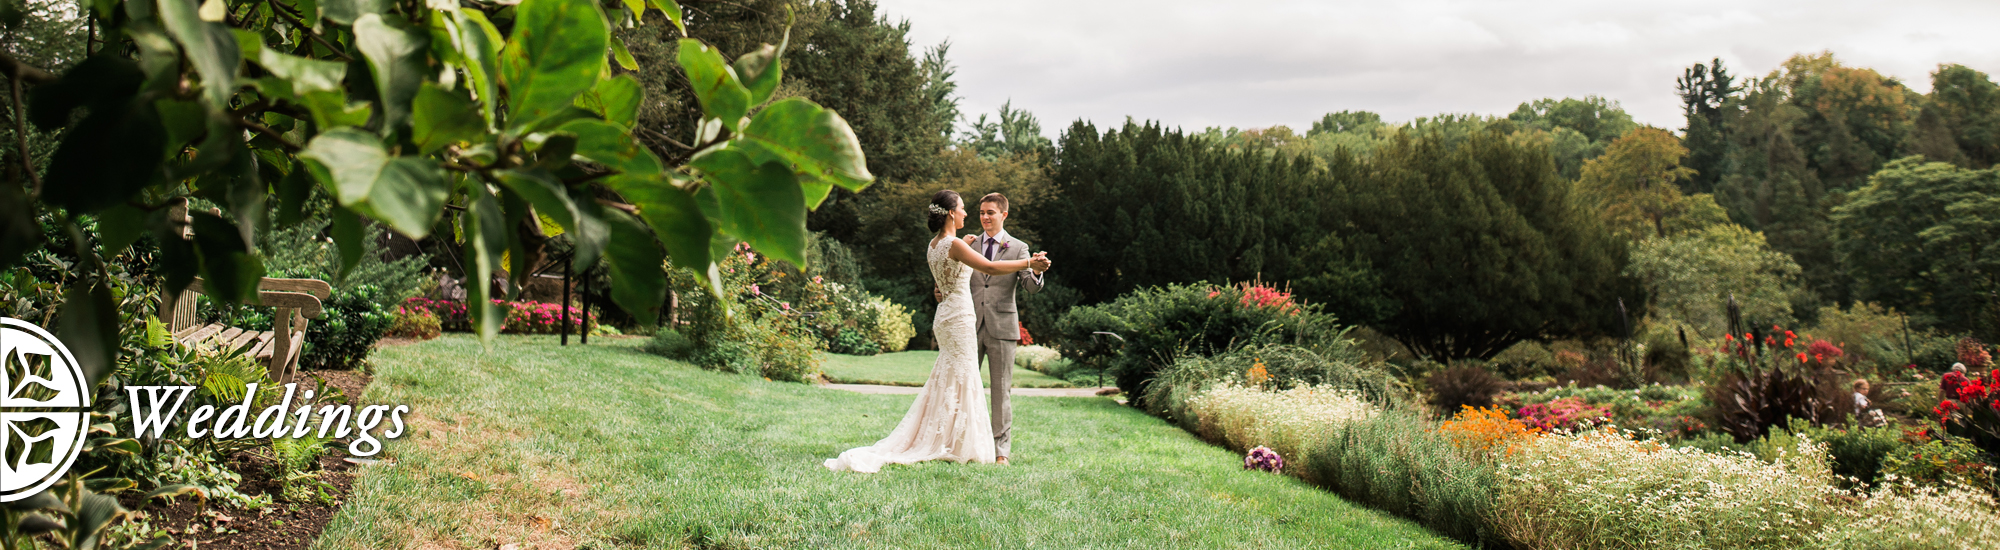 Weddings at Morris Arboretum